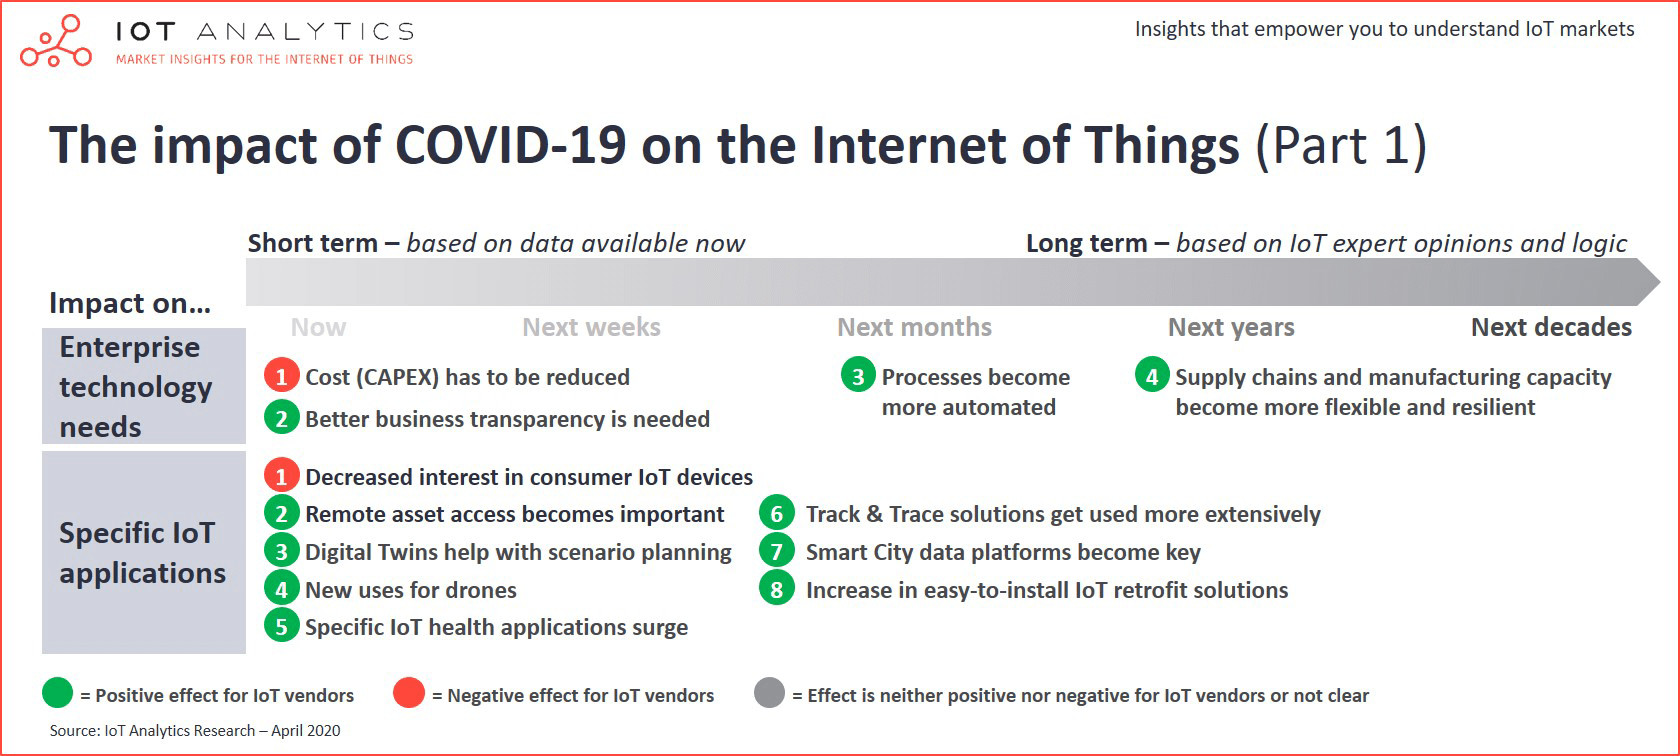 The impact of Covid-19 on the Internet of Things